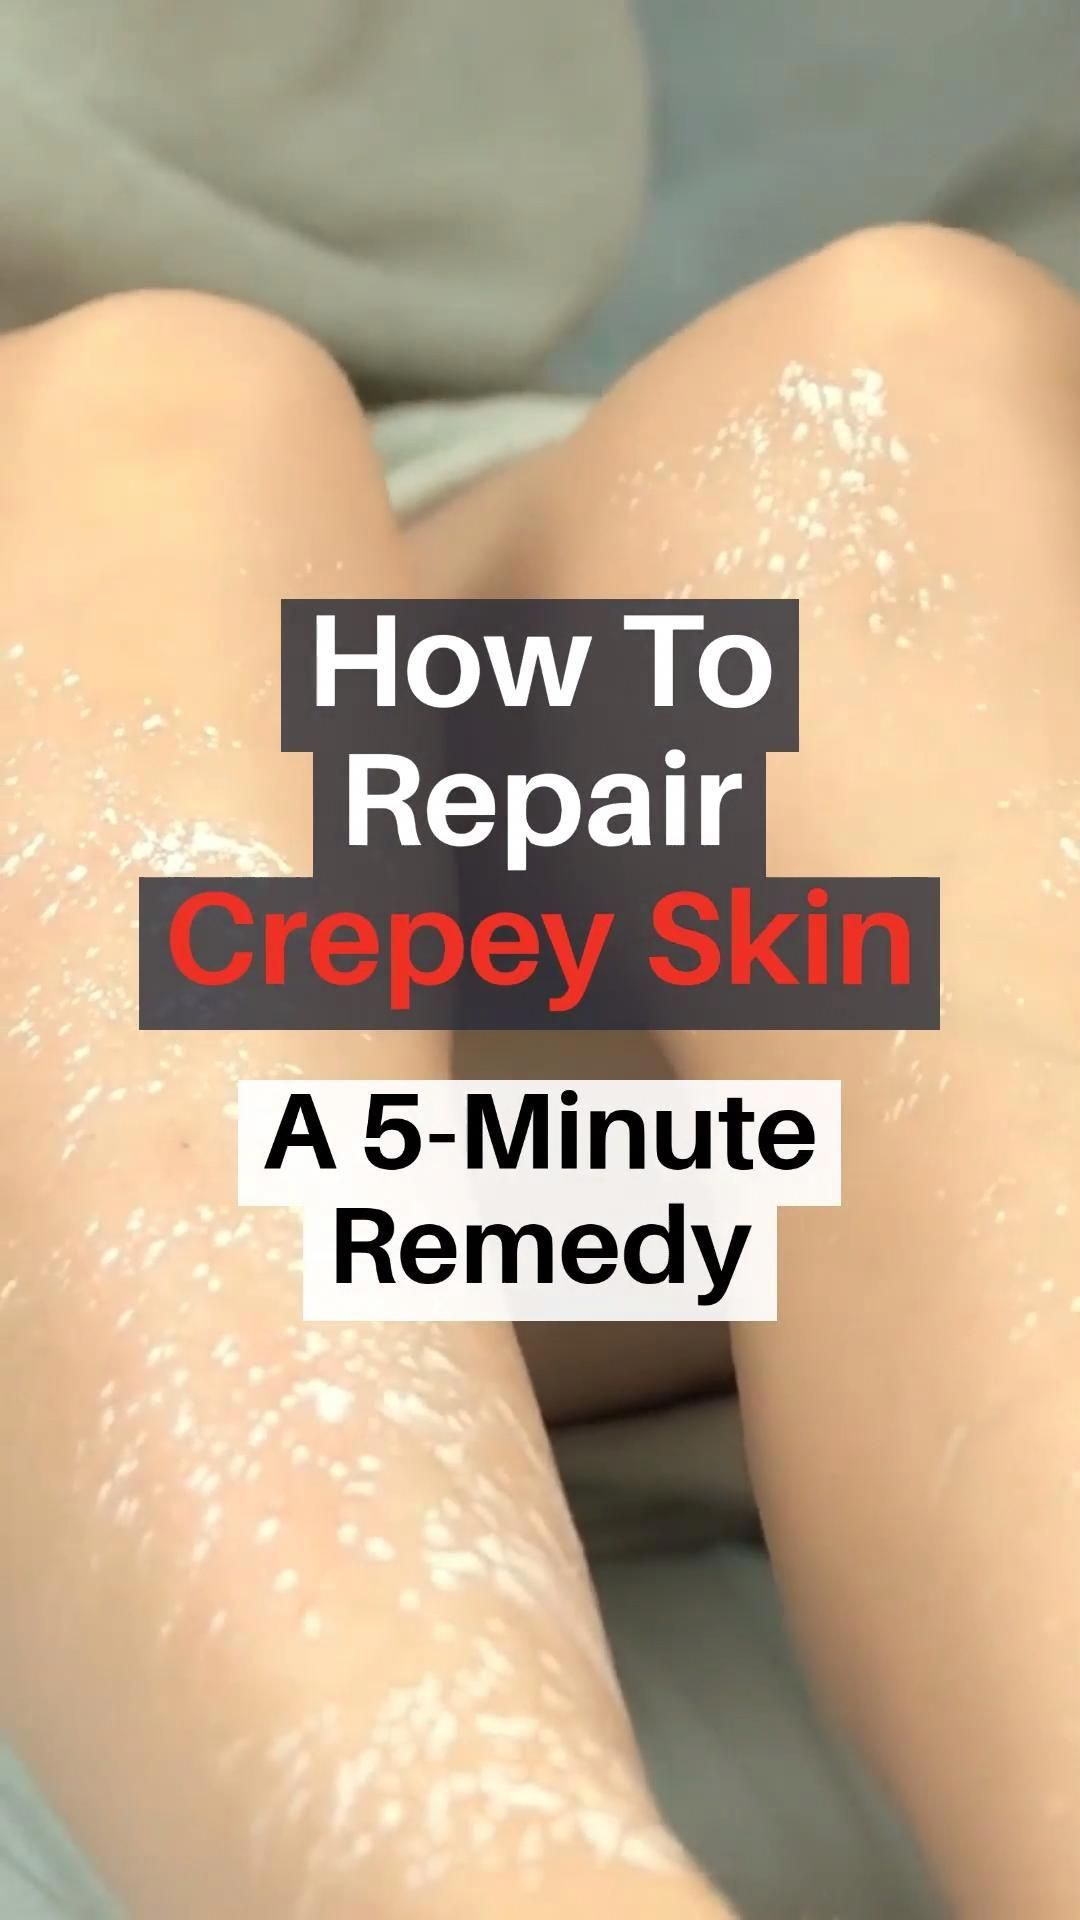 Here's a Great Solution by Beauty Experts for